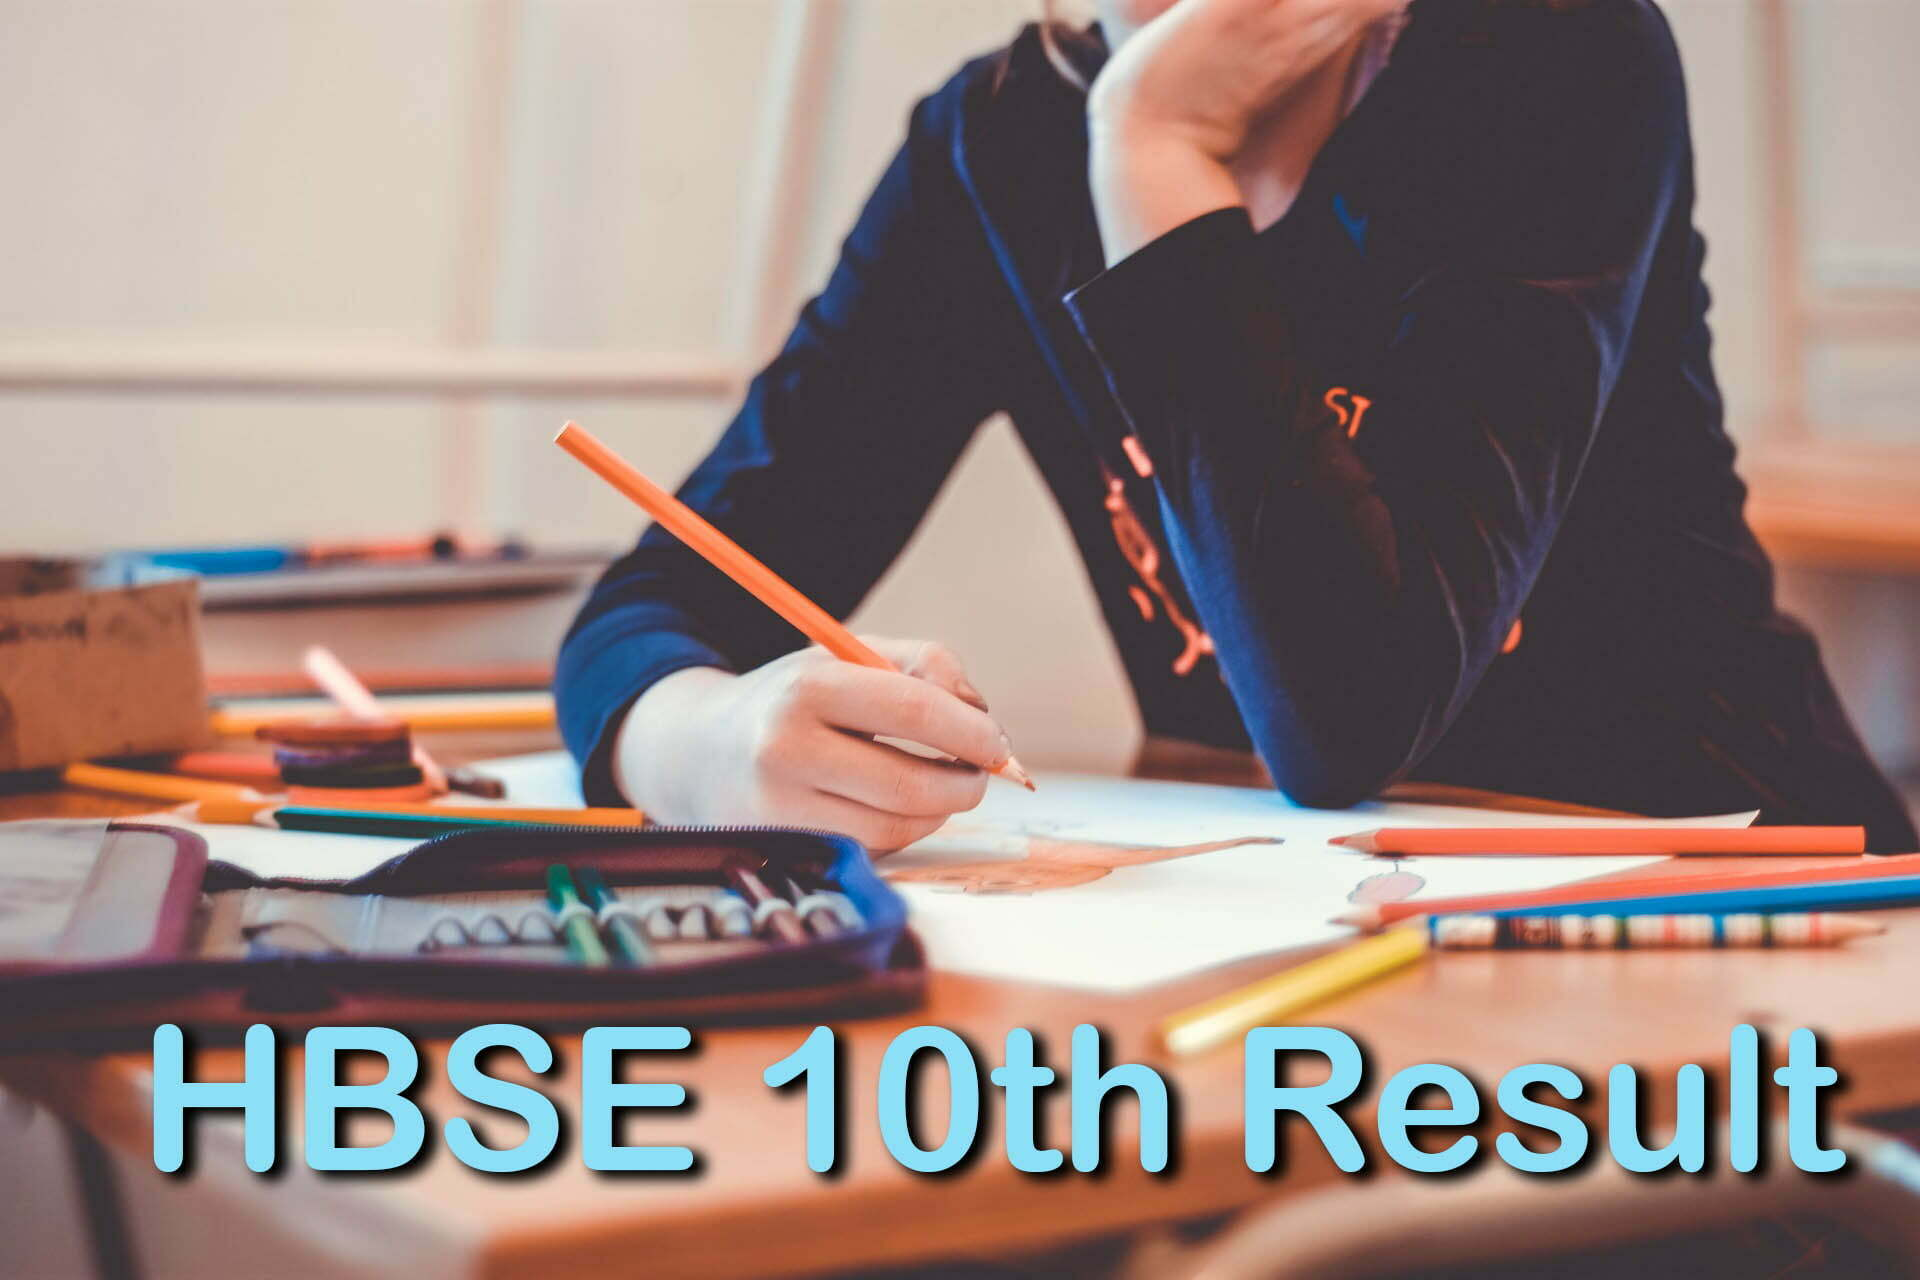 HBSE 10th Result 2020 : Haryana Board 10th Class Result 2020 @ BSEH.ORG.IN